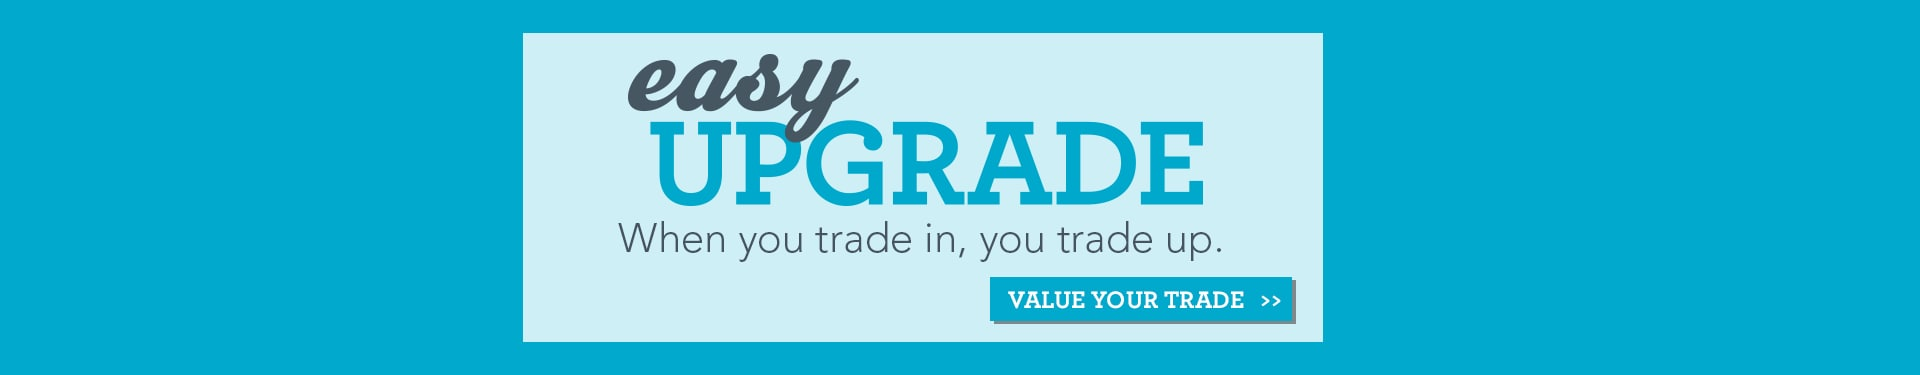 Easy Upgrade Program - Value Your Trade